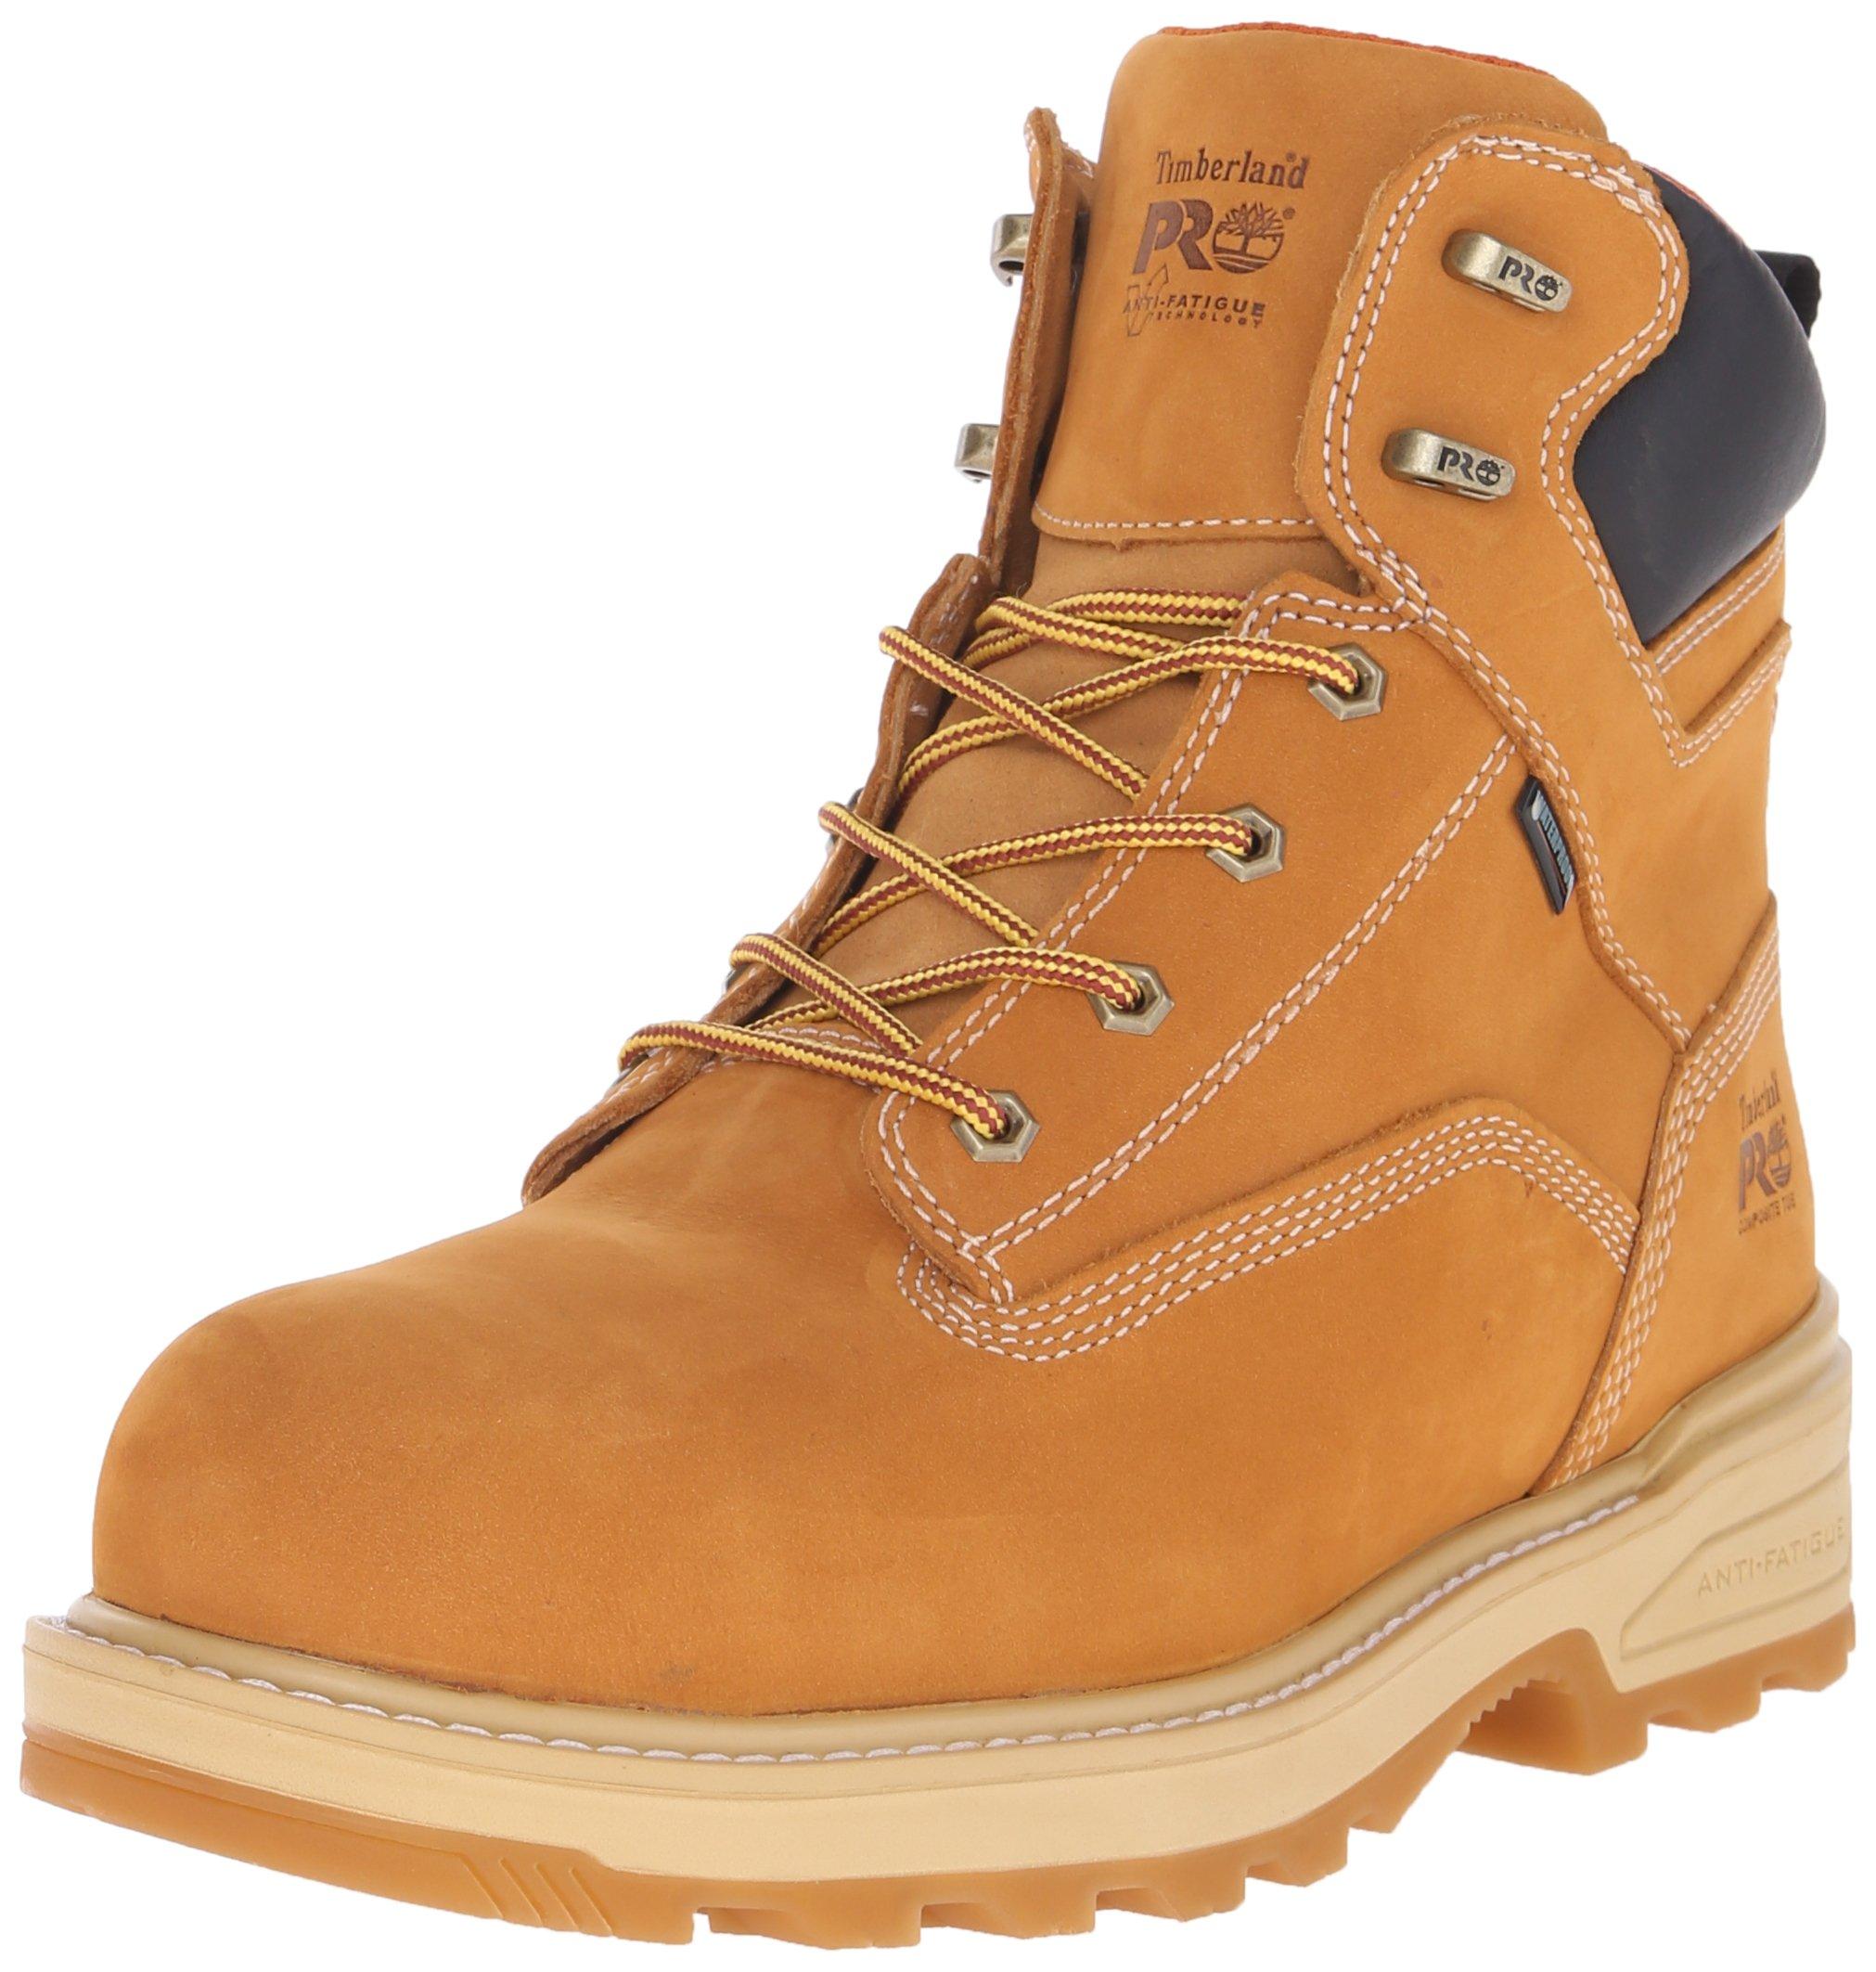 Timberland PRO Men's 6 Inch Resistor Comp Toe Waterproof Ins Work Boot, Wheat Tumbled Full Grain Leather, 13 W US